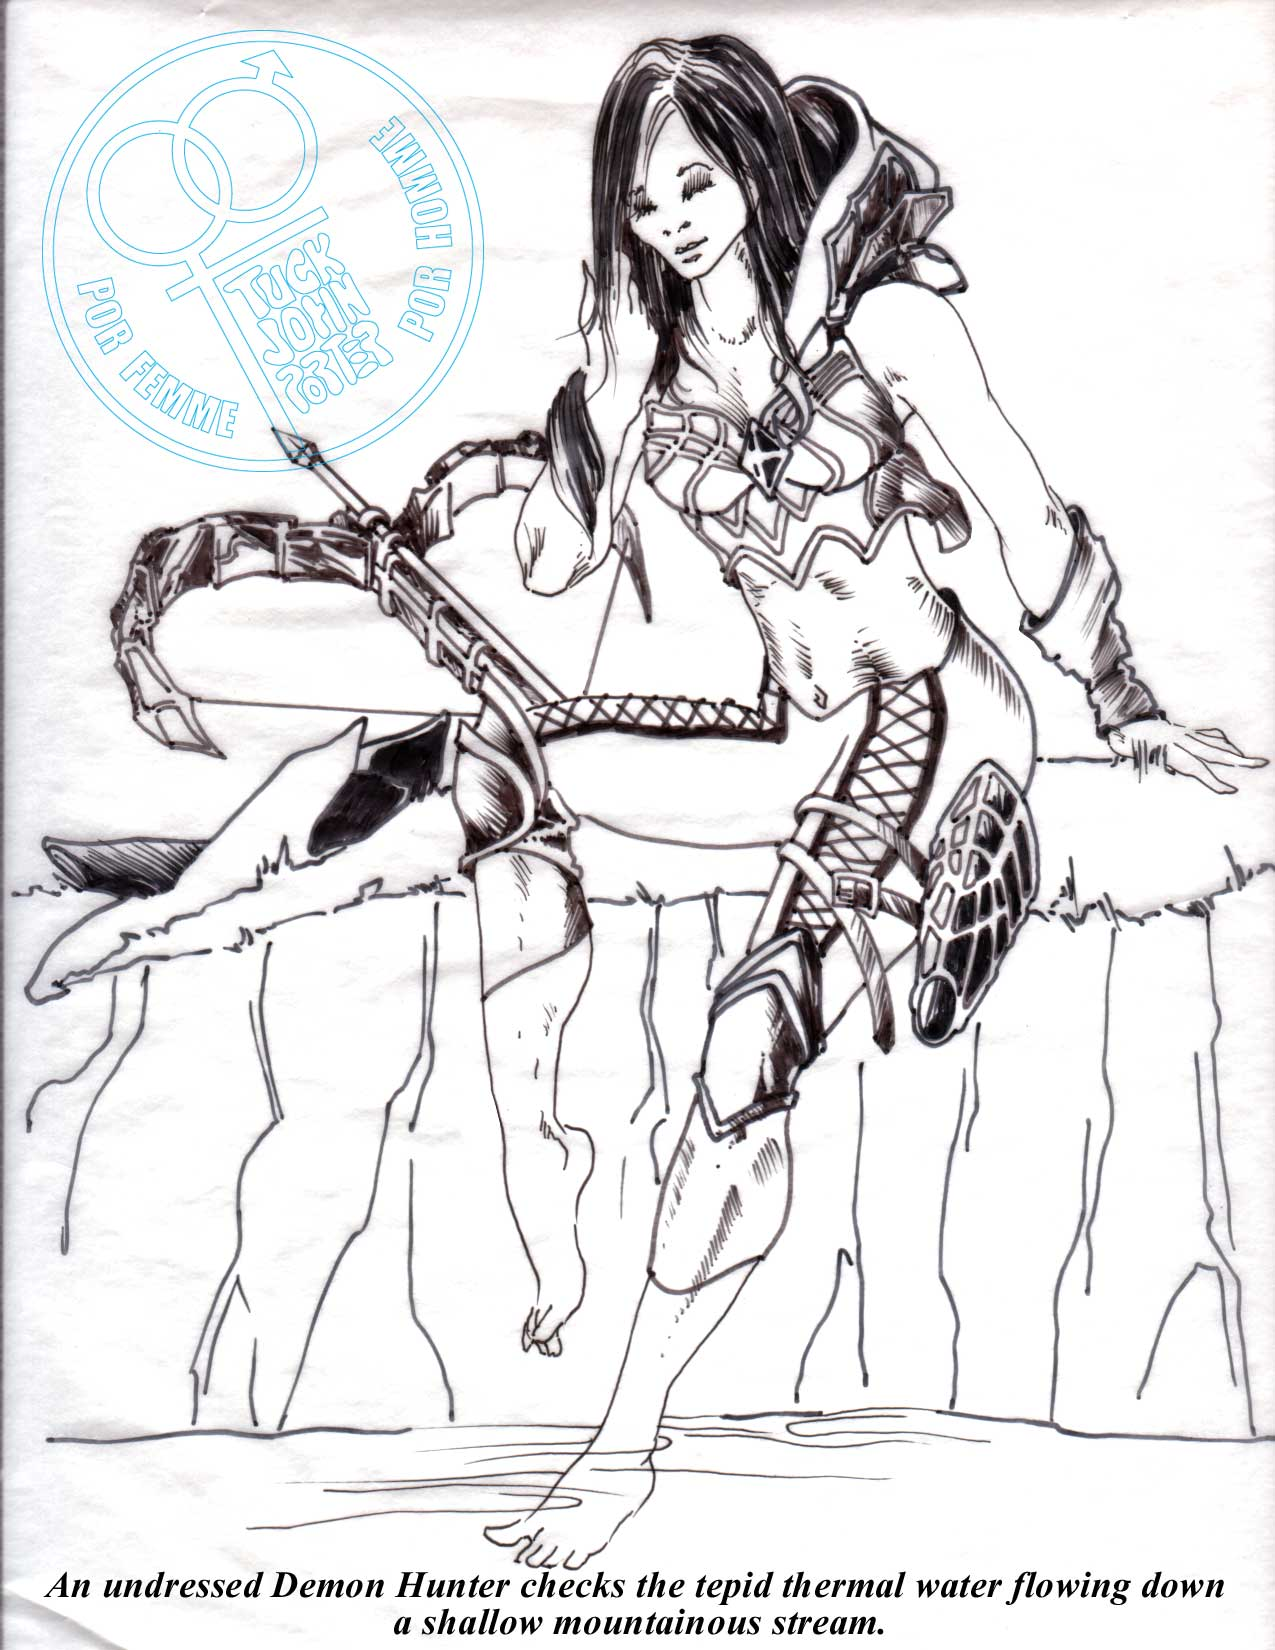 Demon Hunter Sensual Art by Designer TJP